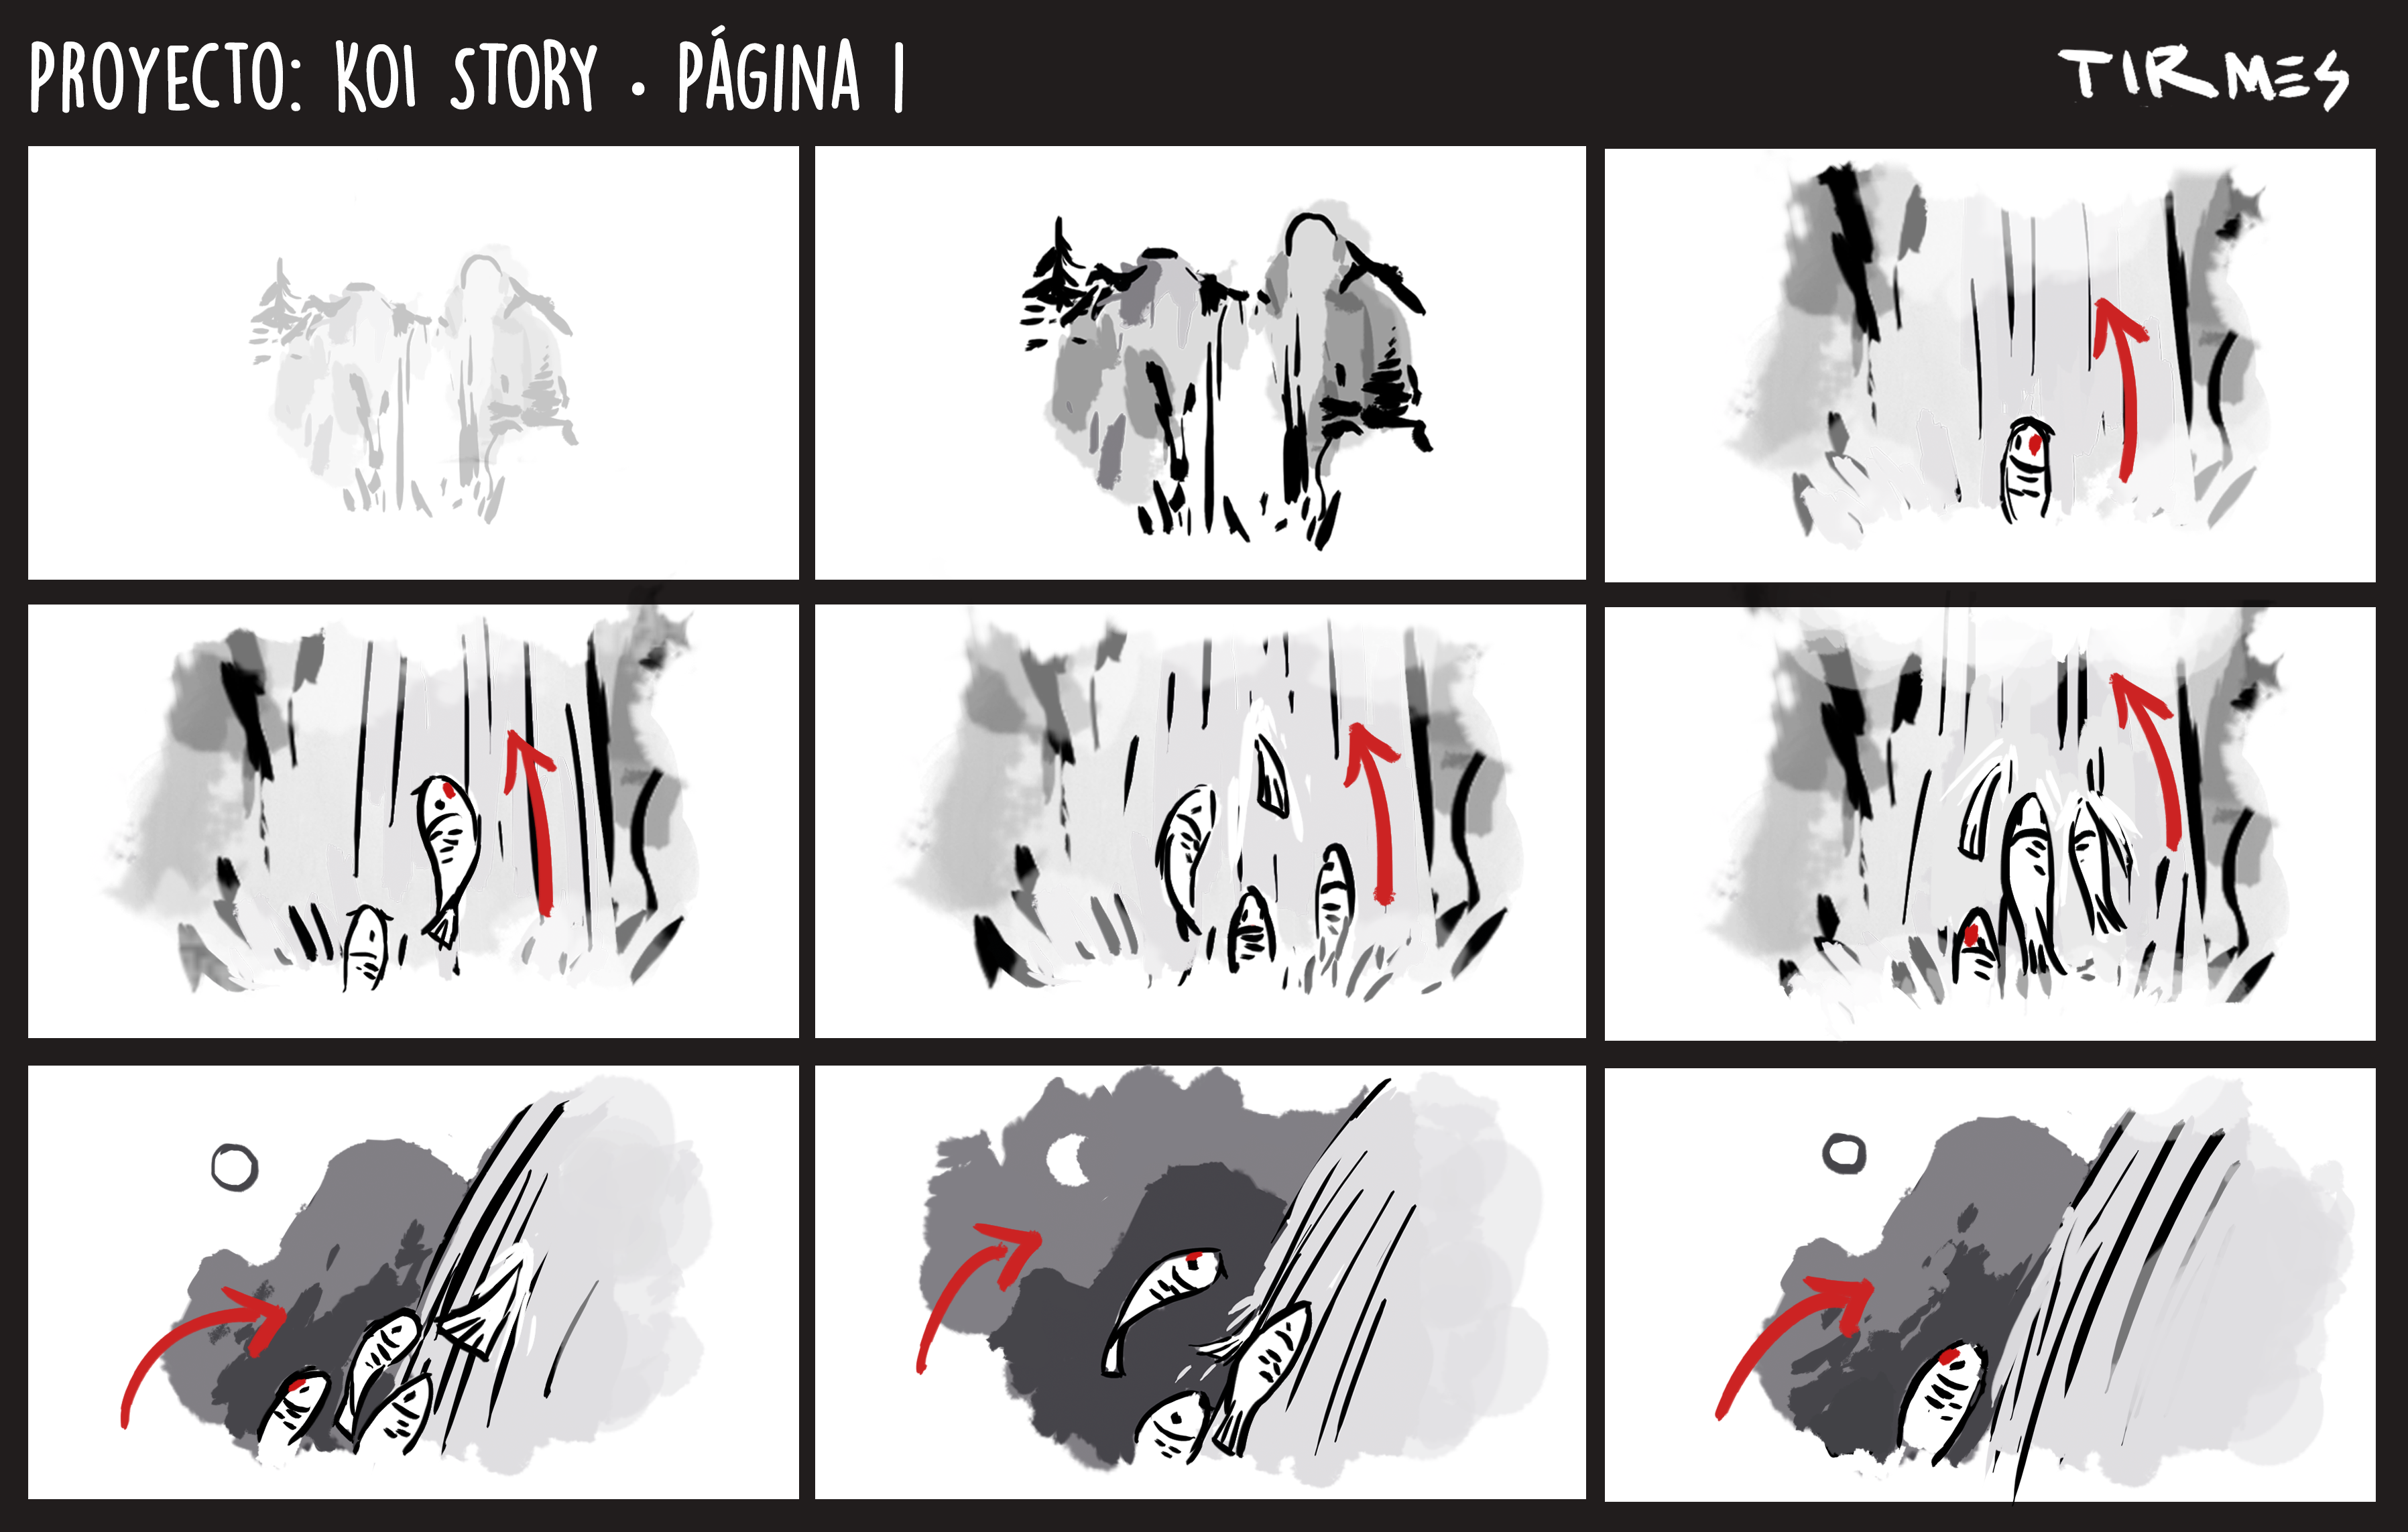 Storyboard page 1